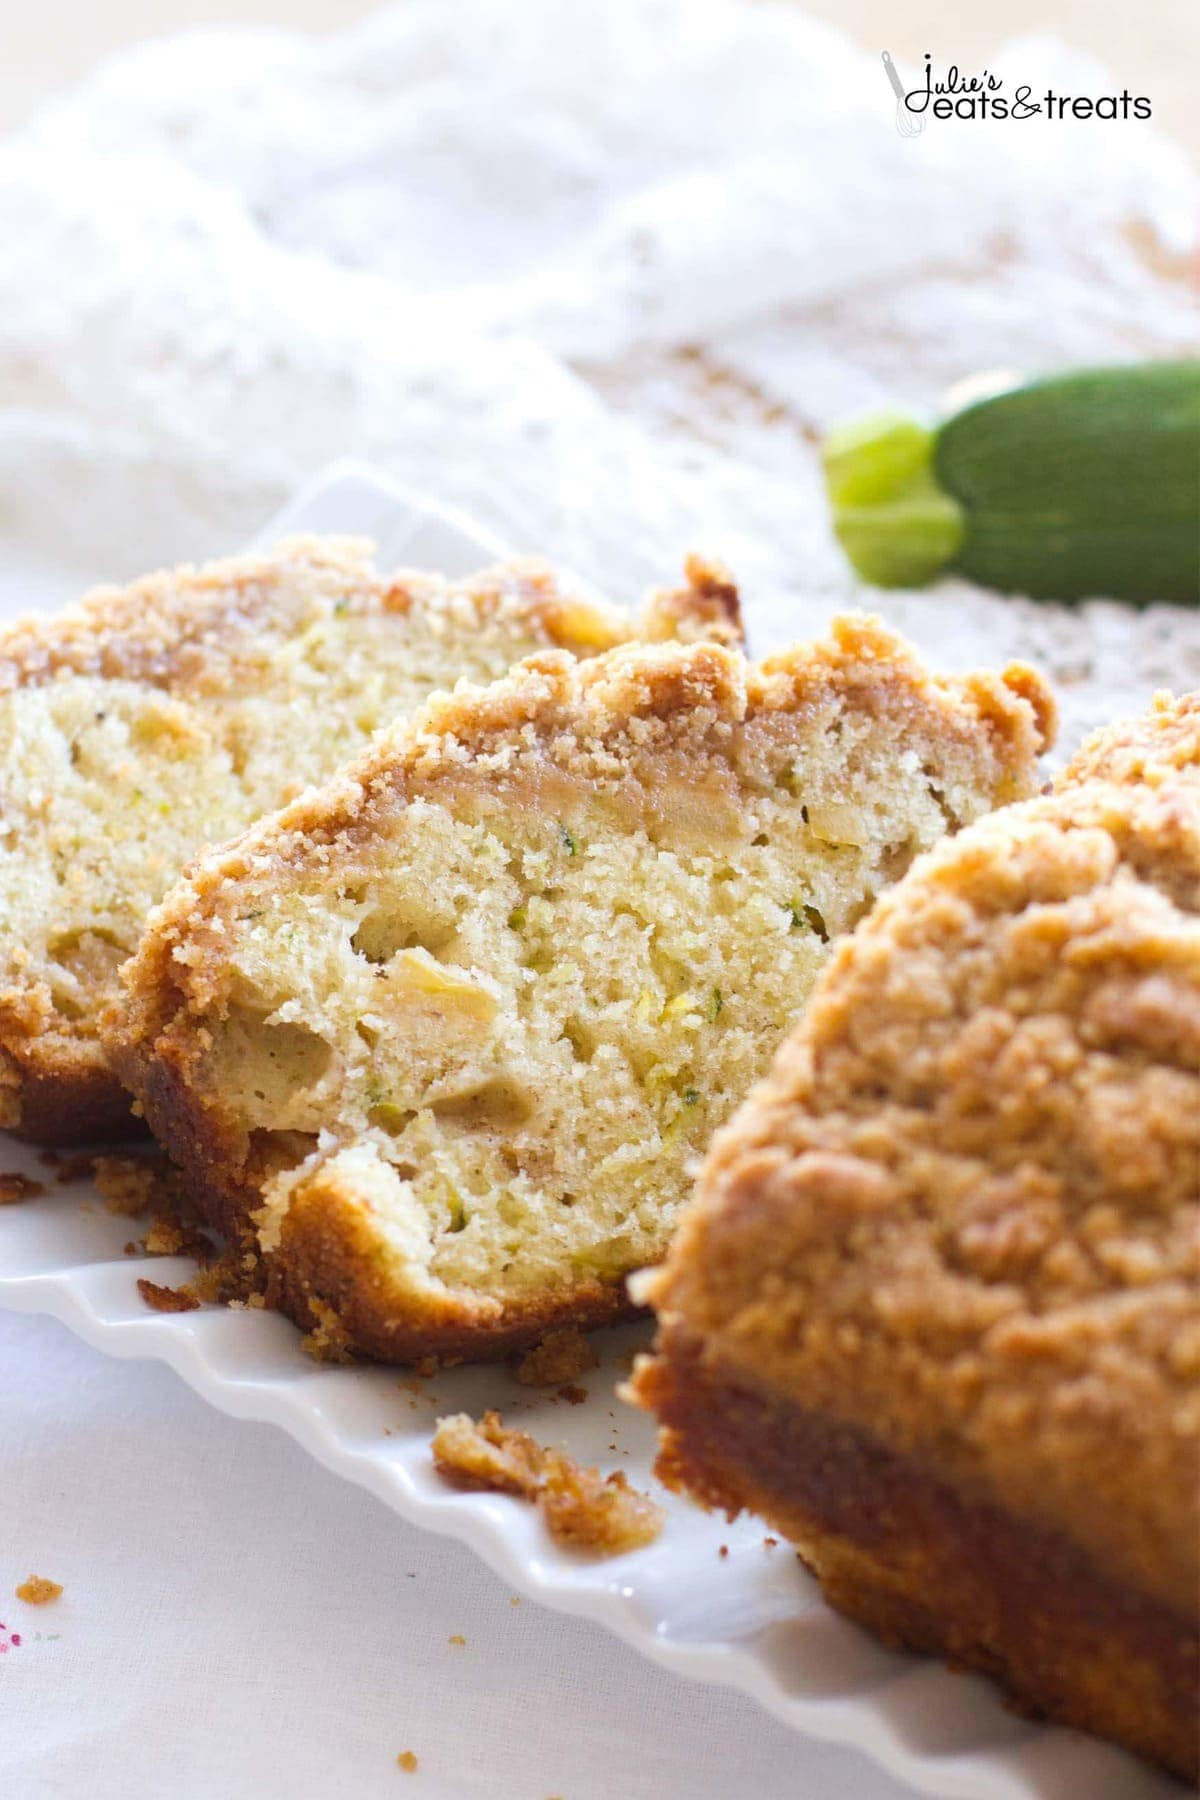 Sliced Crumb Apple Zucchini Bread ~ Easy, Quick Bread Recipe Filled with Fresh Grated Zucchini and Sweet Apples then Topped with Cinnamon Brown Sugar Crumb Topping on a white cloth.